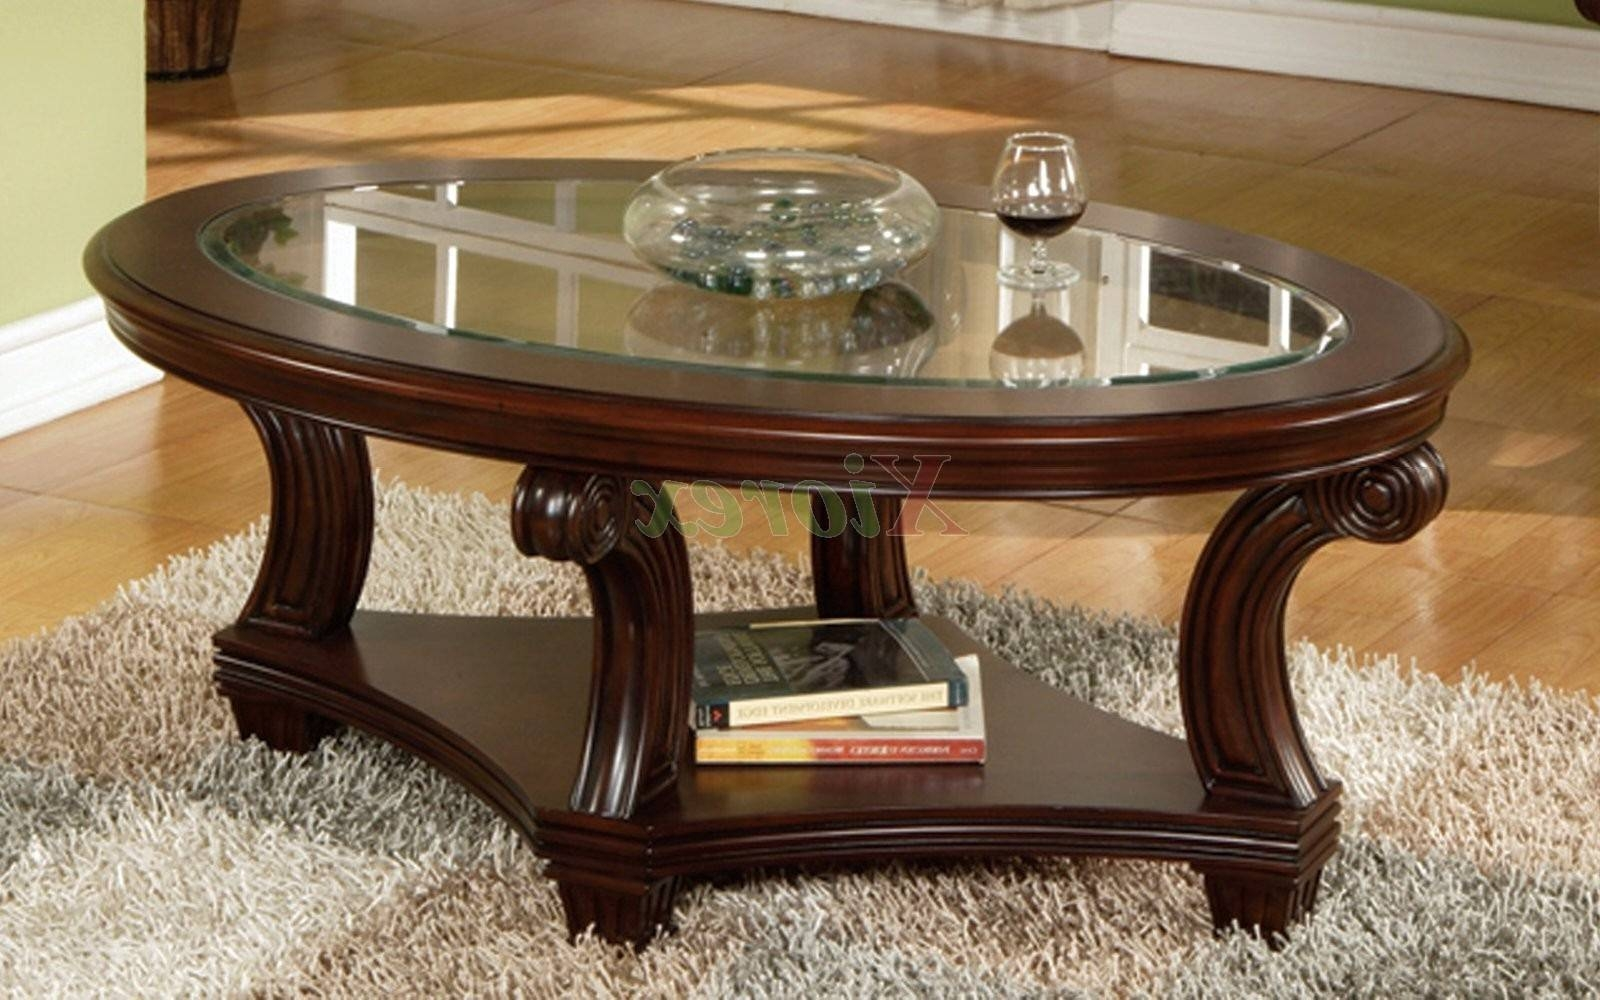 Glass Top Coffee Table With Storage | Coffee Tables Decoration pertaining to Mercury Glass Coffee Tables (Image 21 of 30)